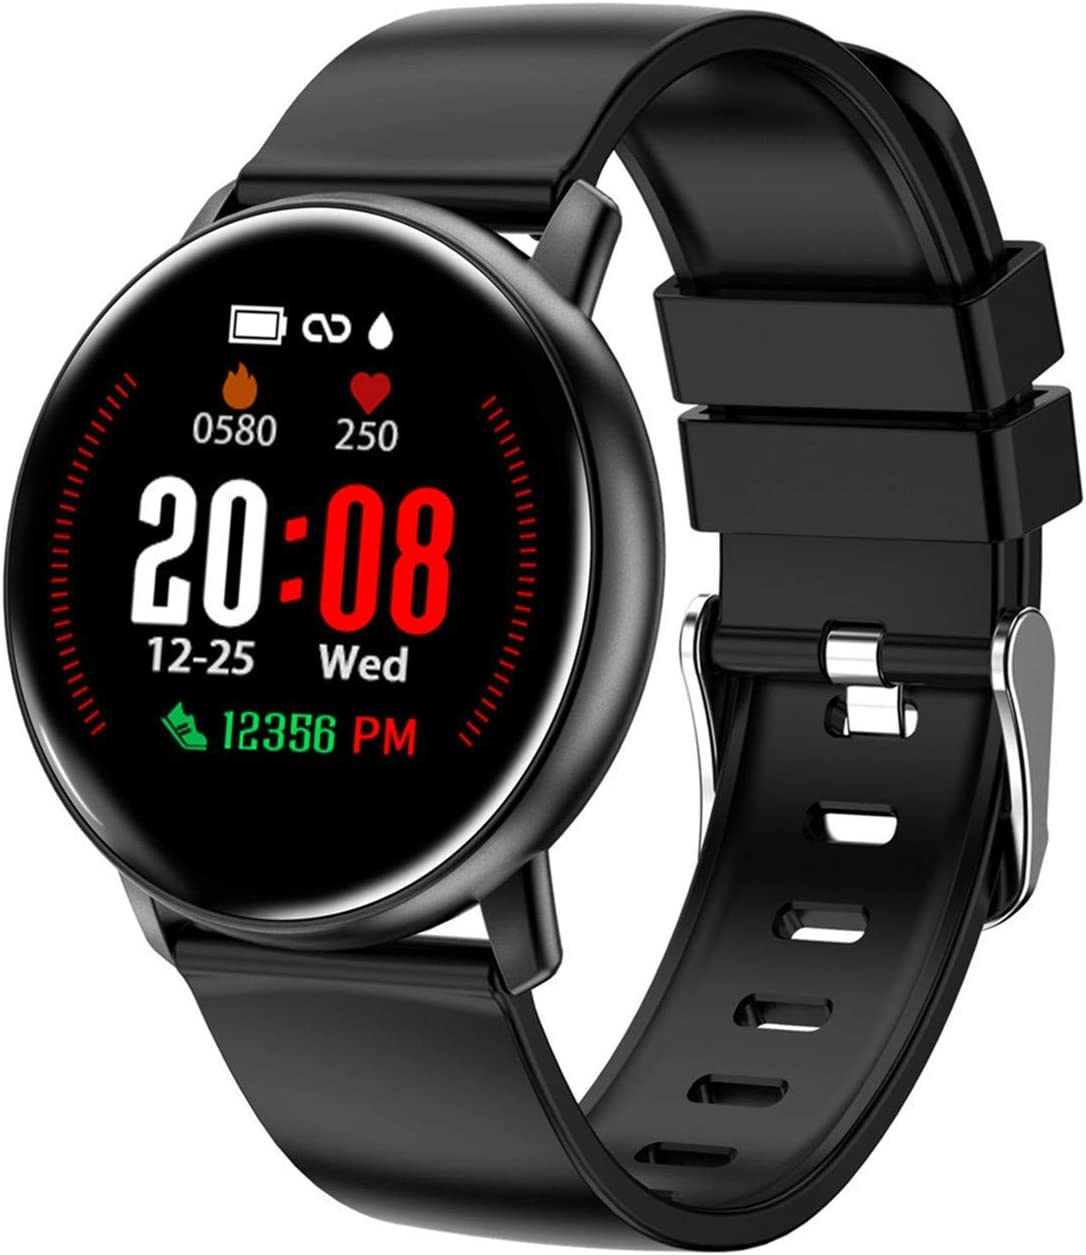 Smart Watch for Android Phones and iPhone Compatible, Fitness Tracker for Men and Women with 10 Workout Modes, Track Your All-Day Steps, Calories Burned, IP68 Waterproof